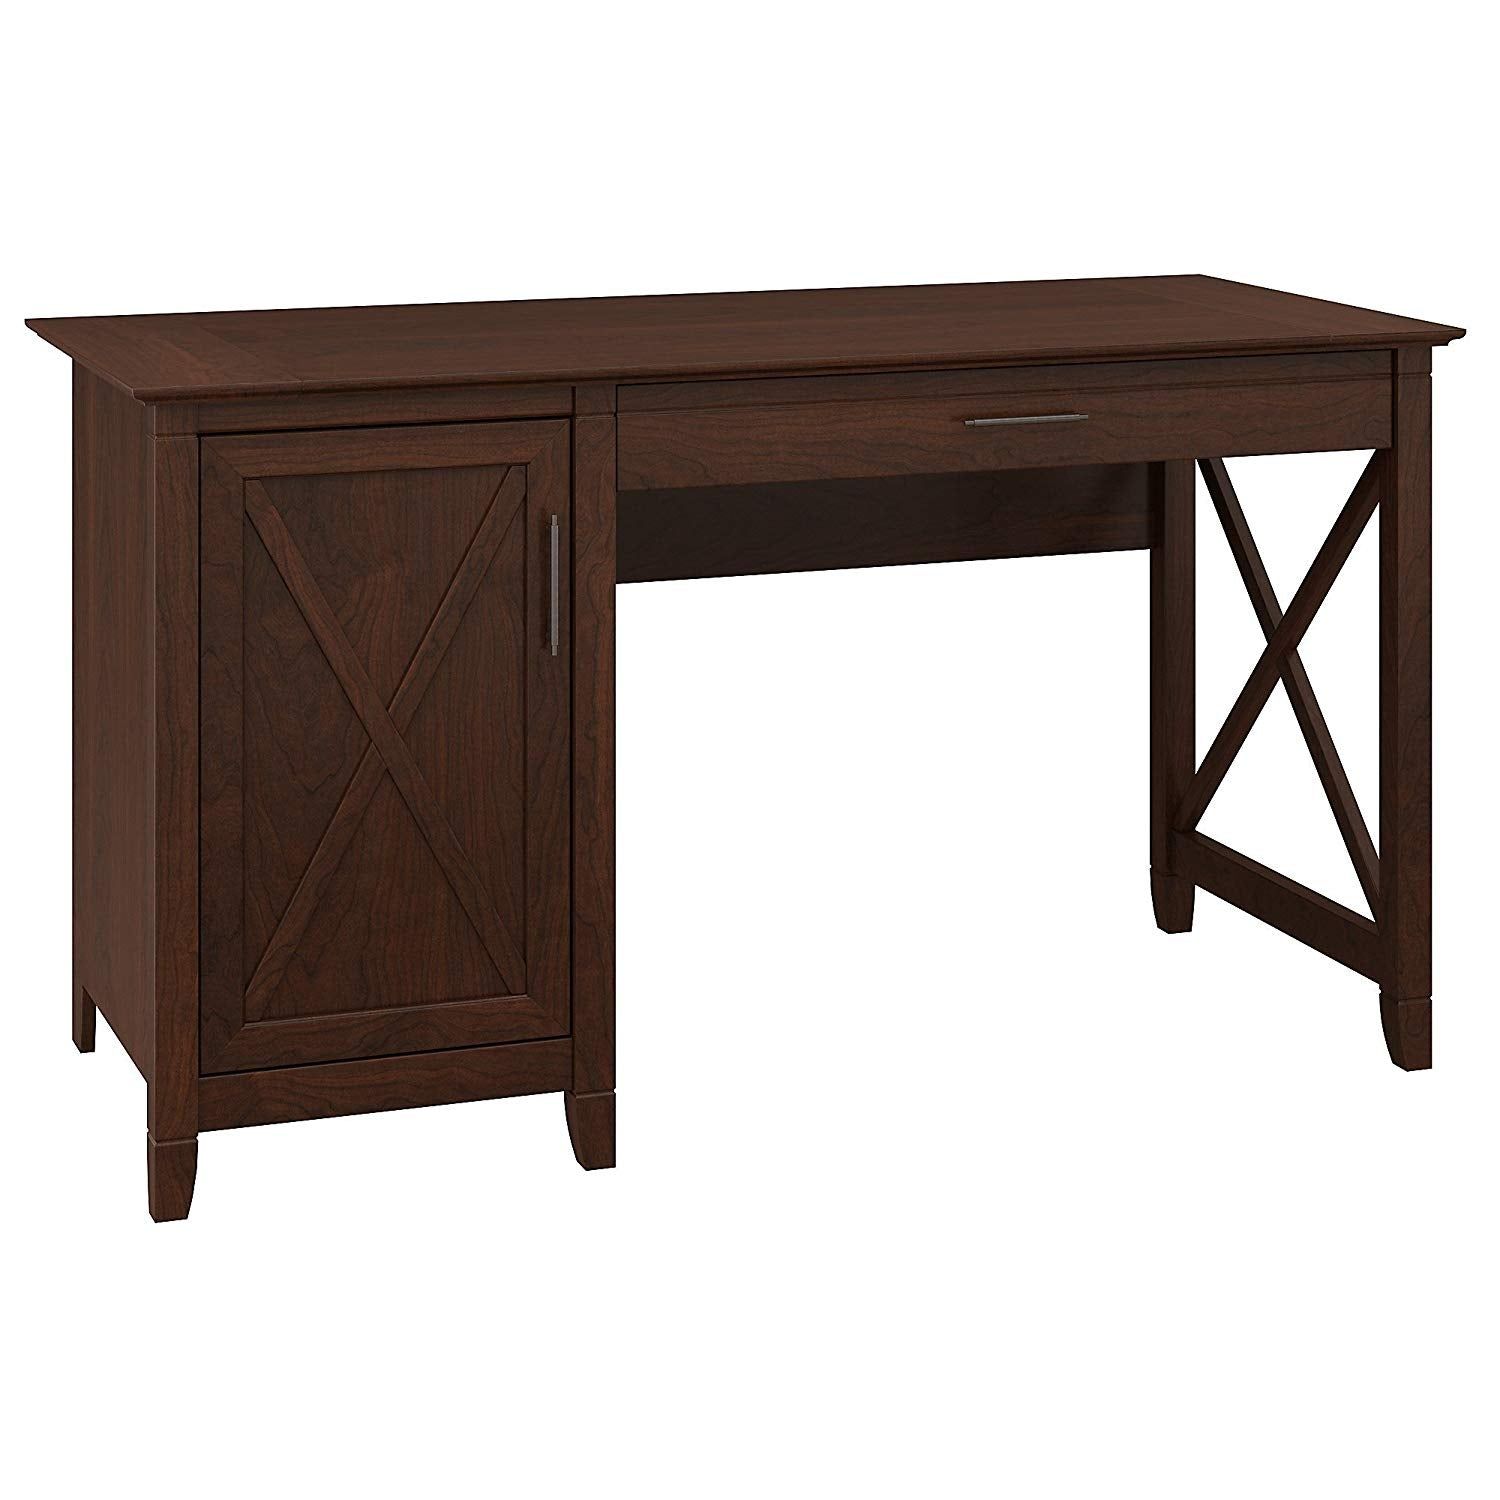 Key West Collection 54W Single Pedestal Desk in Washed Gray